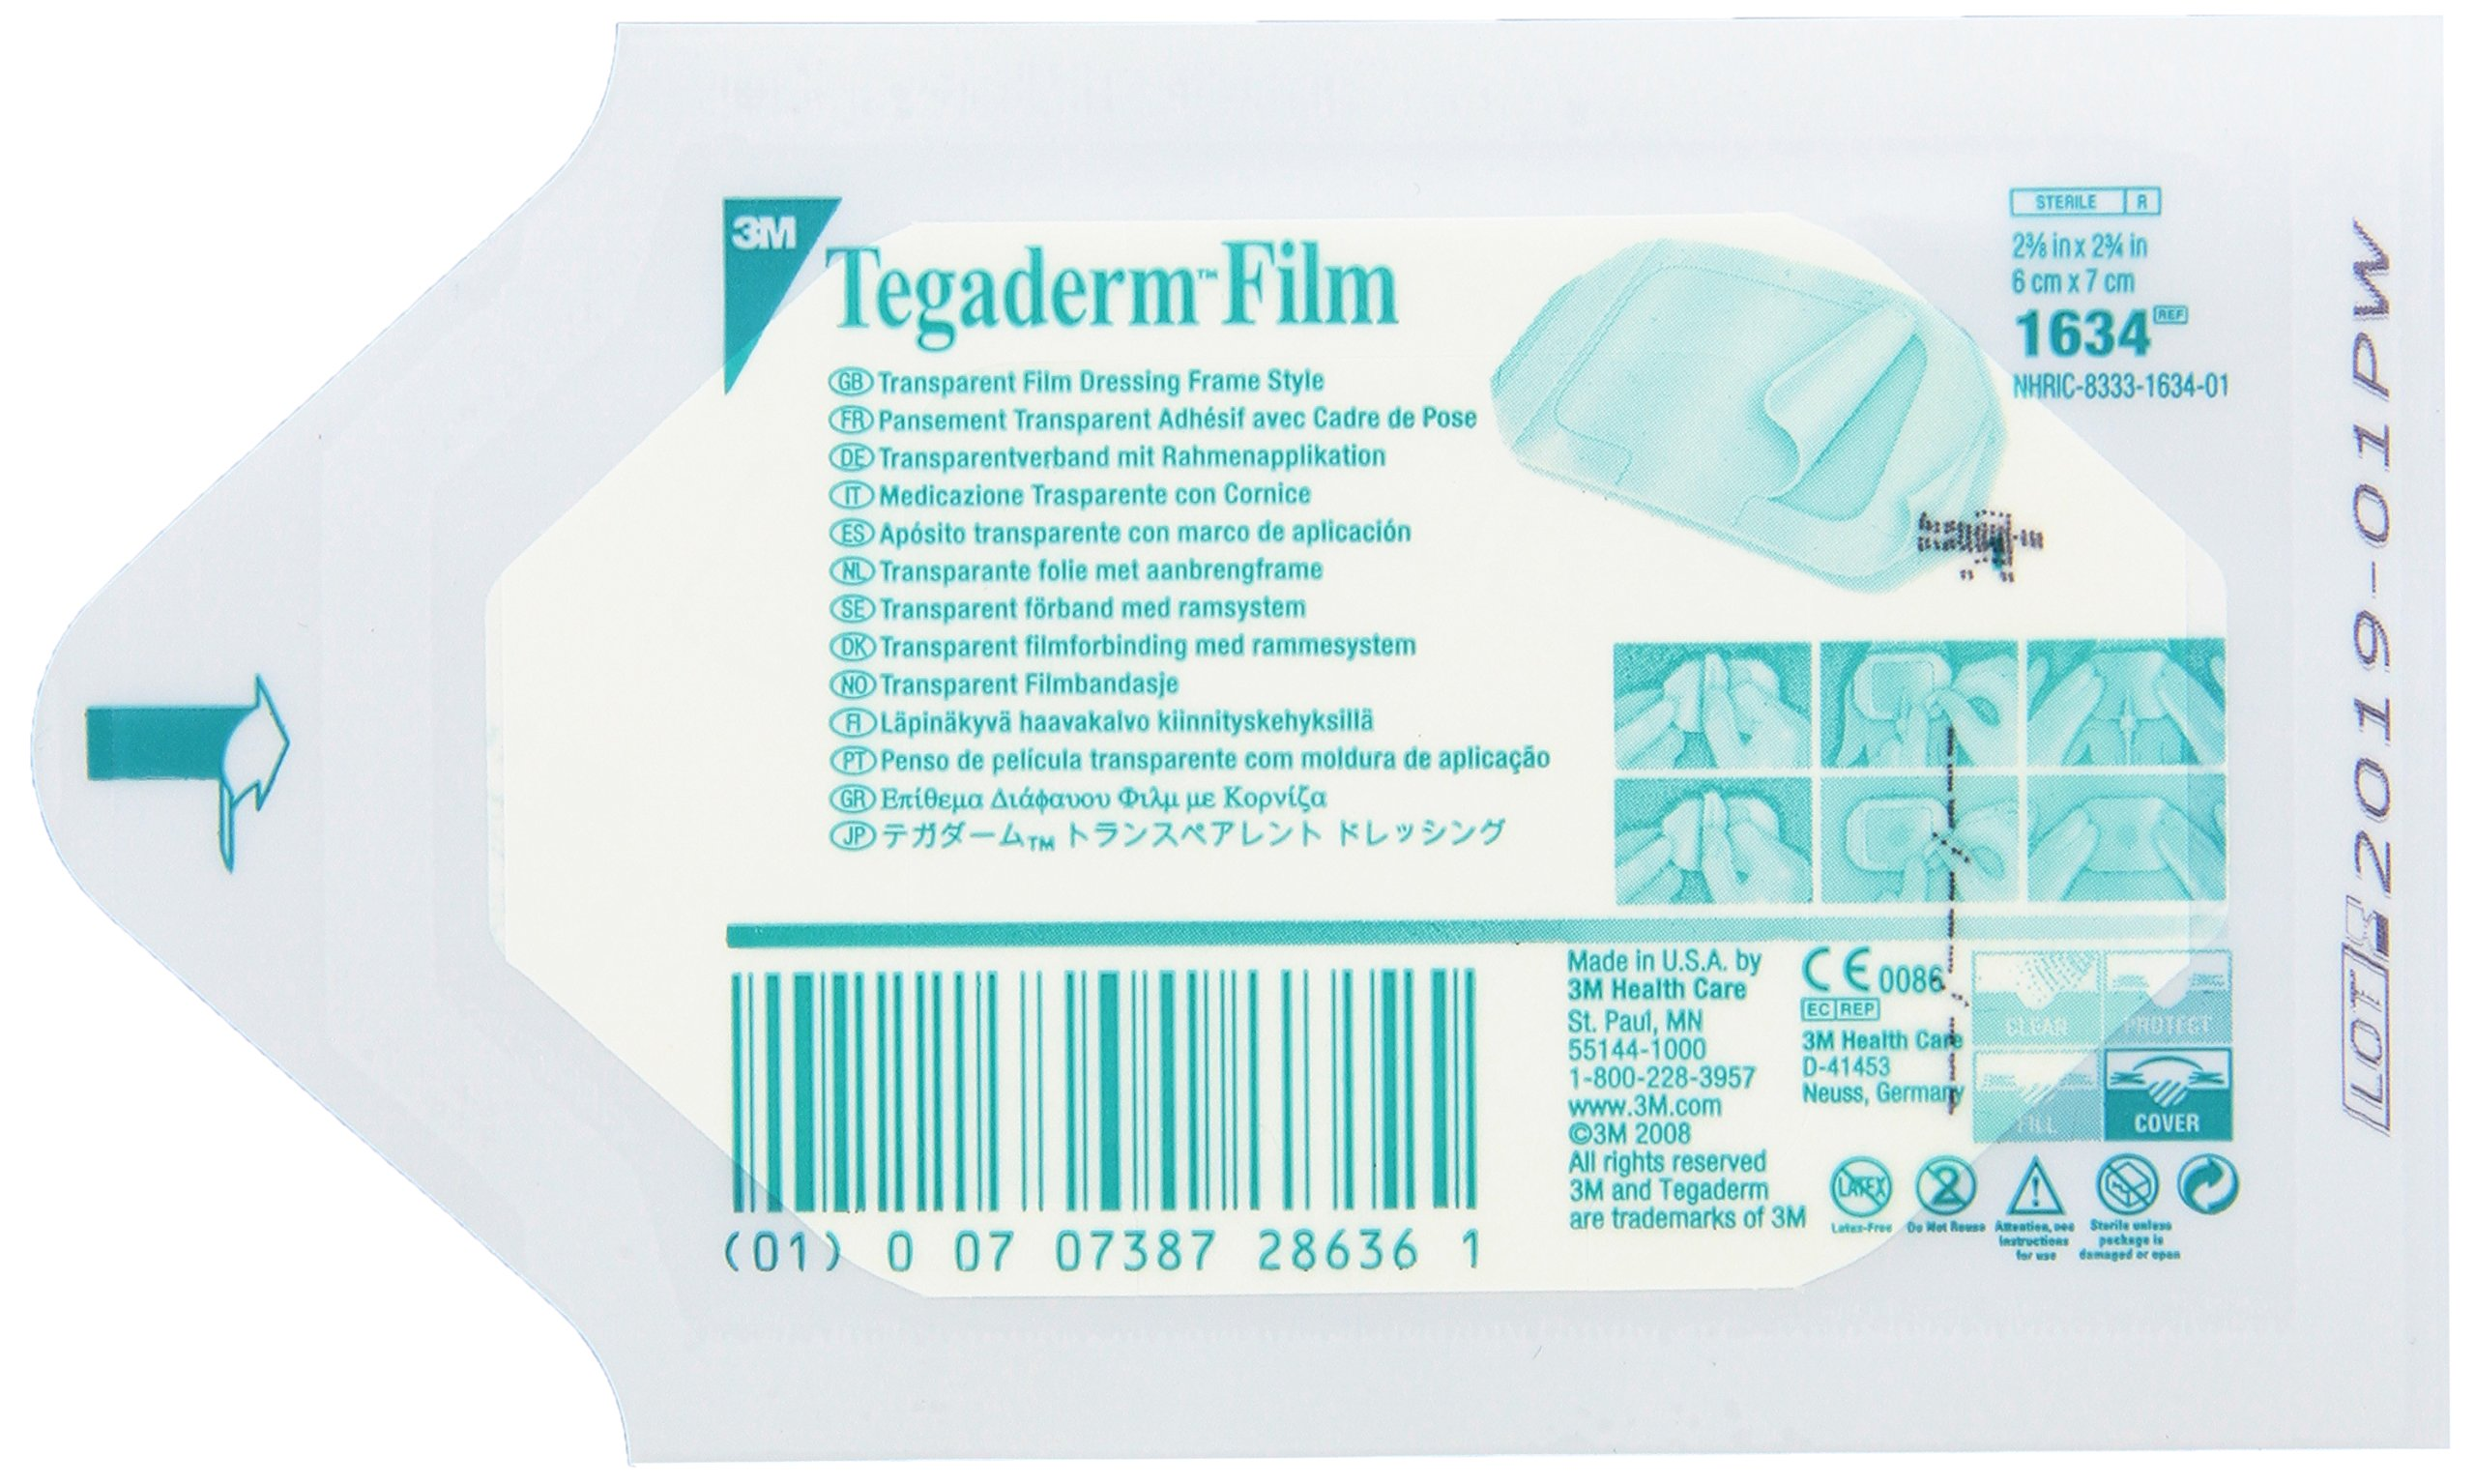 3M C3SD 1634 Tegaderm Transparent Film, Dressing Frame Style (Pack of 400) by 3M